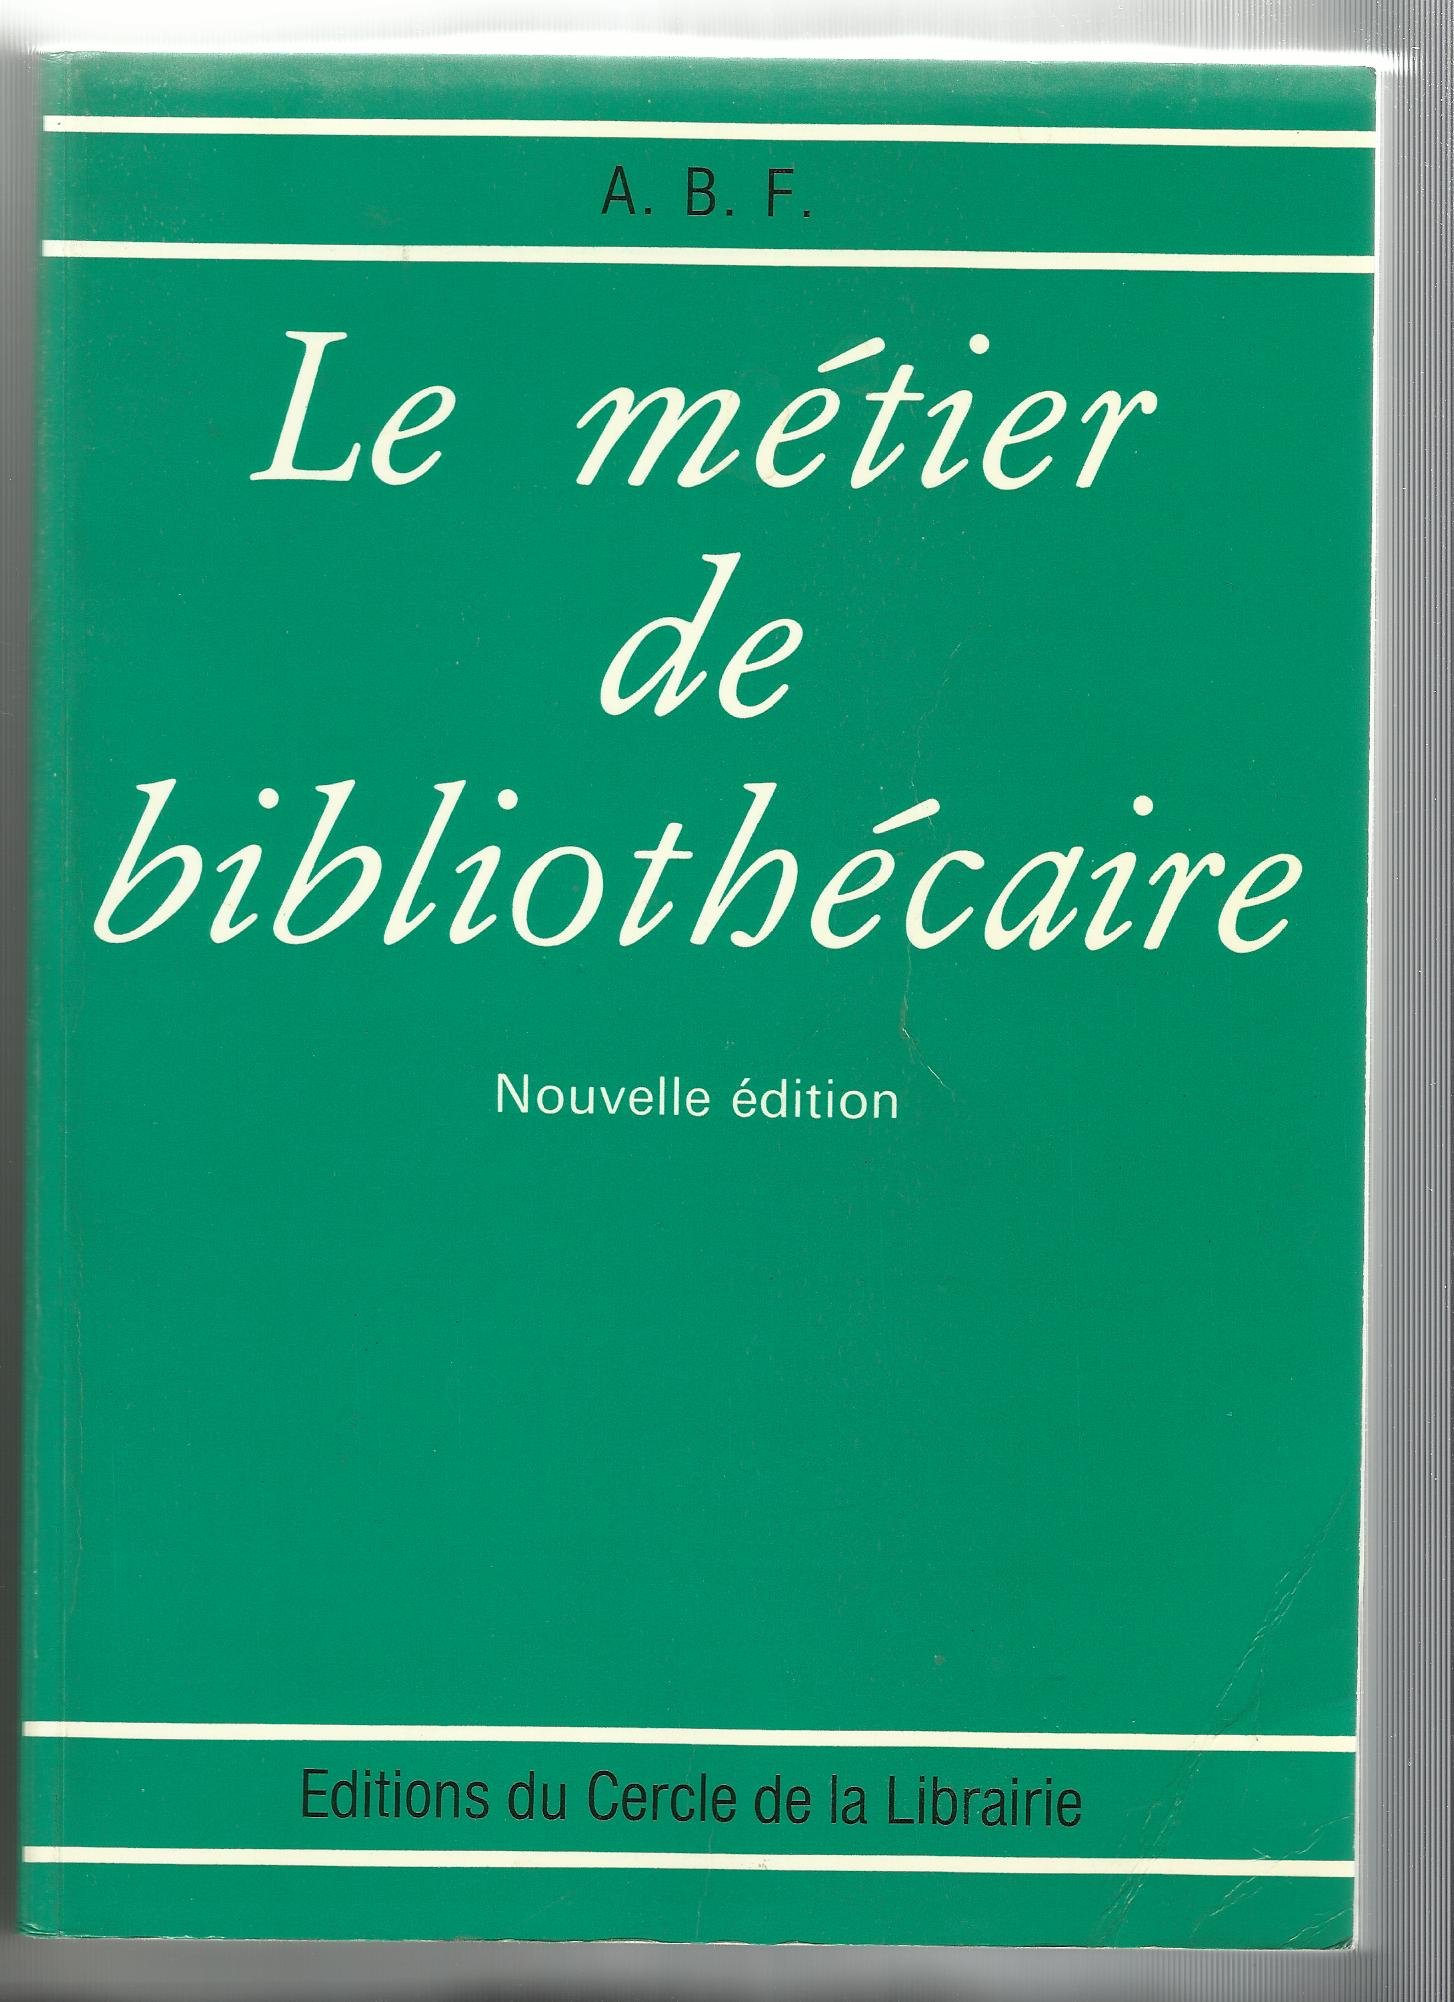 formation professionnelle bibliothecaire